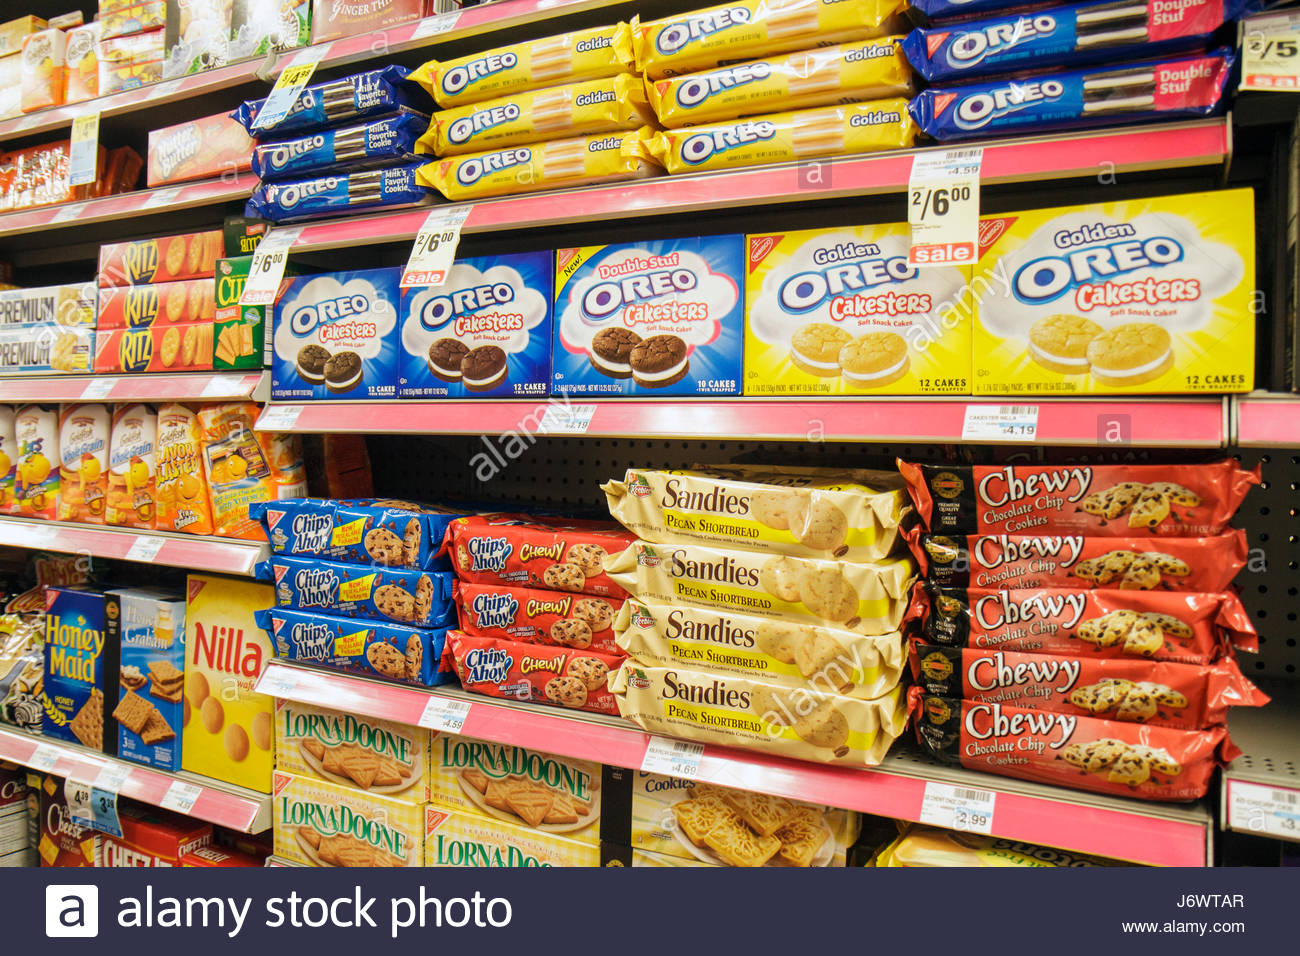 Miami Beach Florida CVS Pharmacy drug store retail display shelves competing products packaging for sale cookies - Stock Image